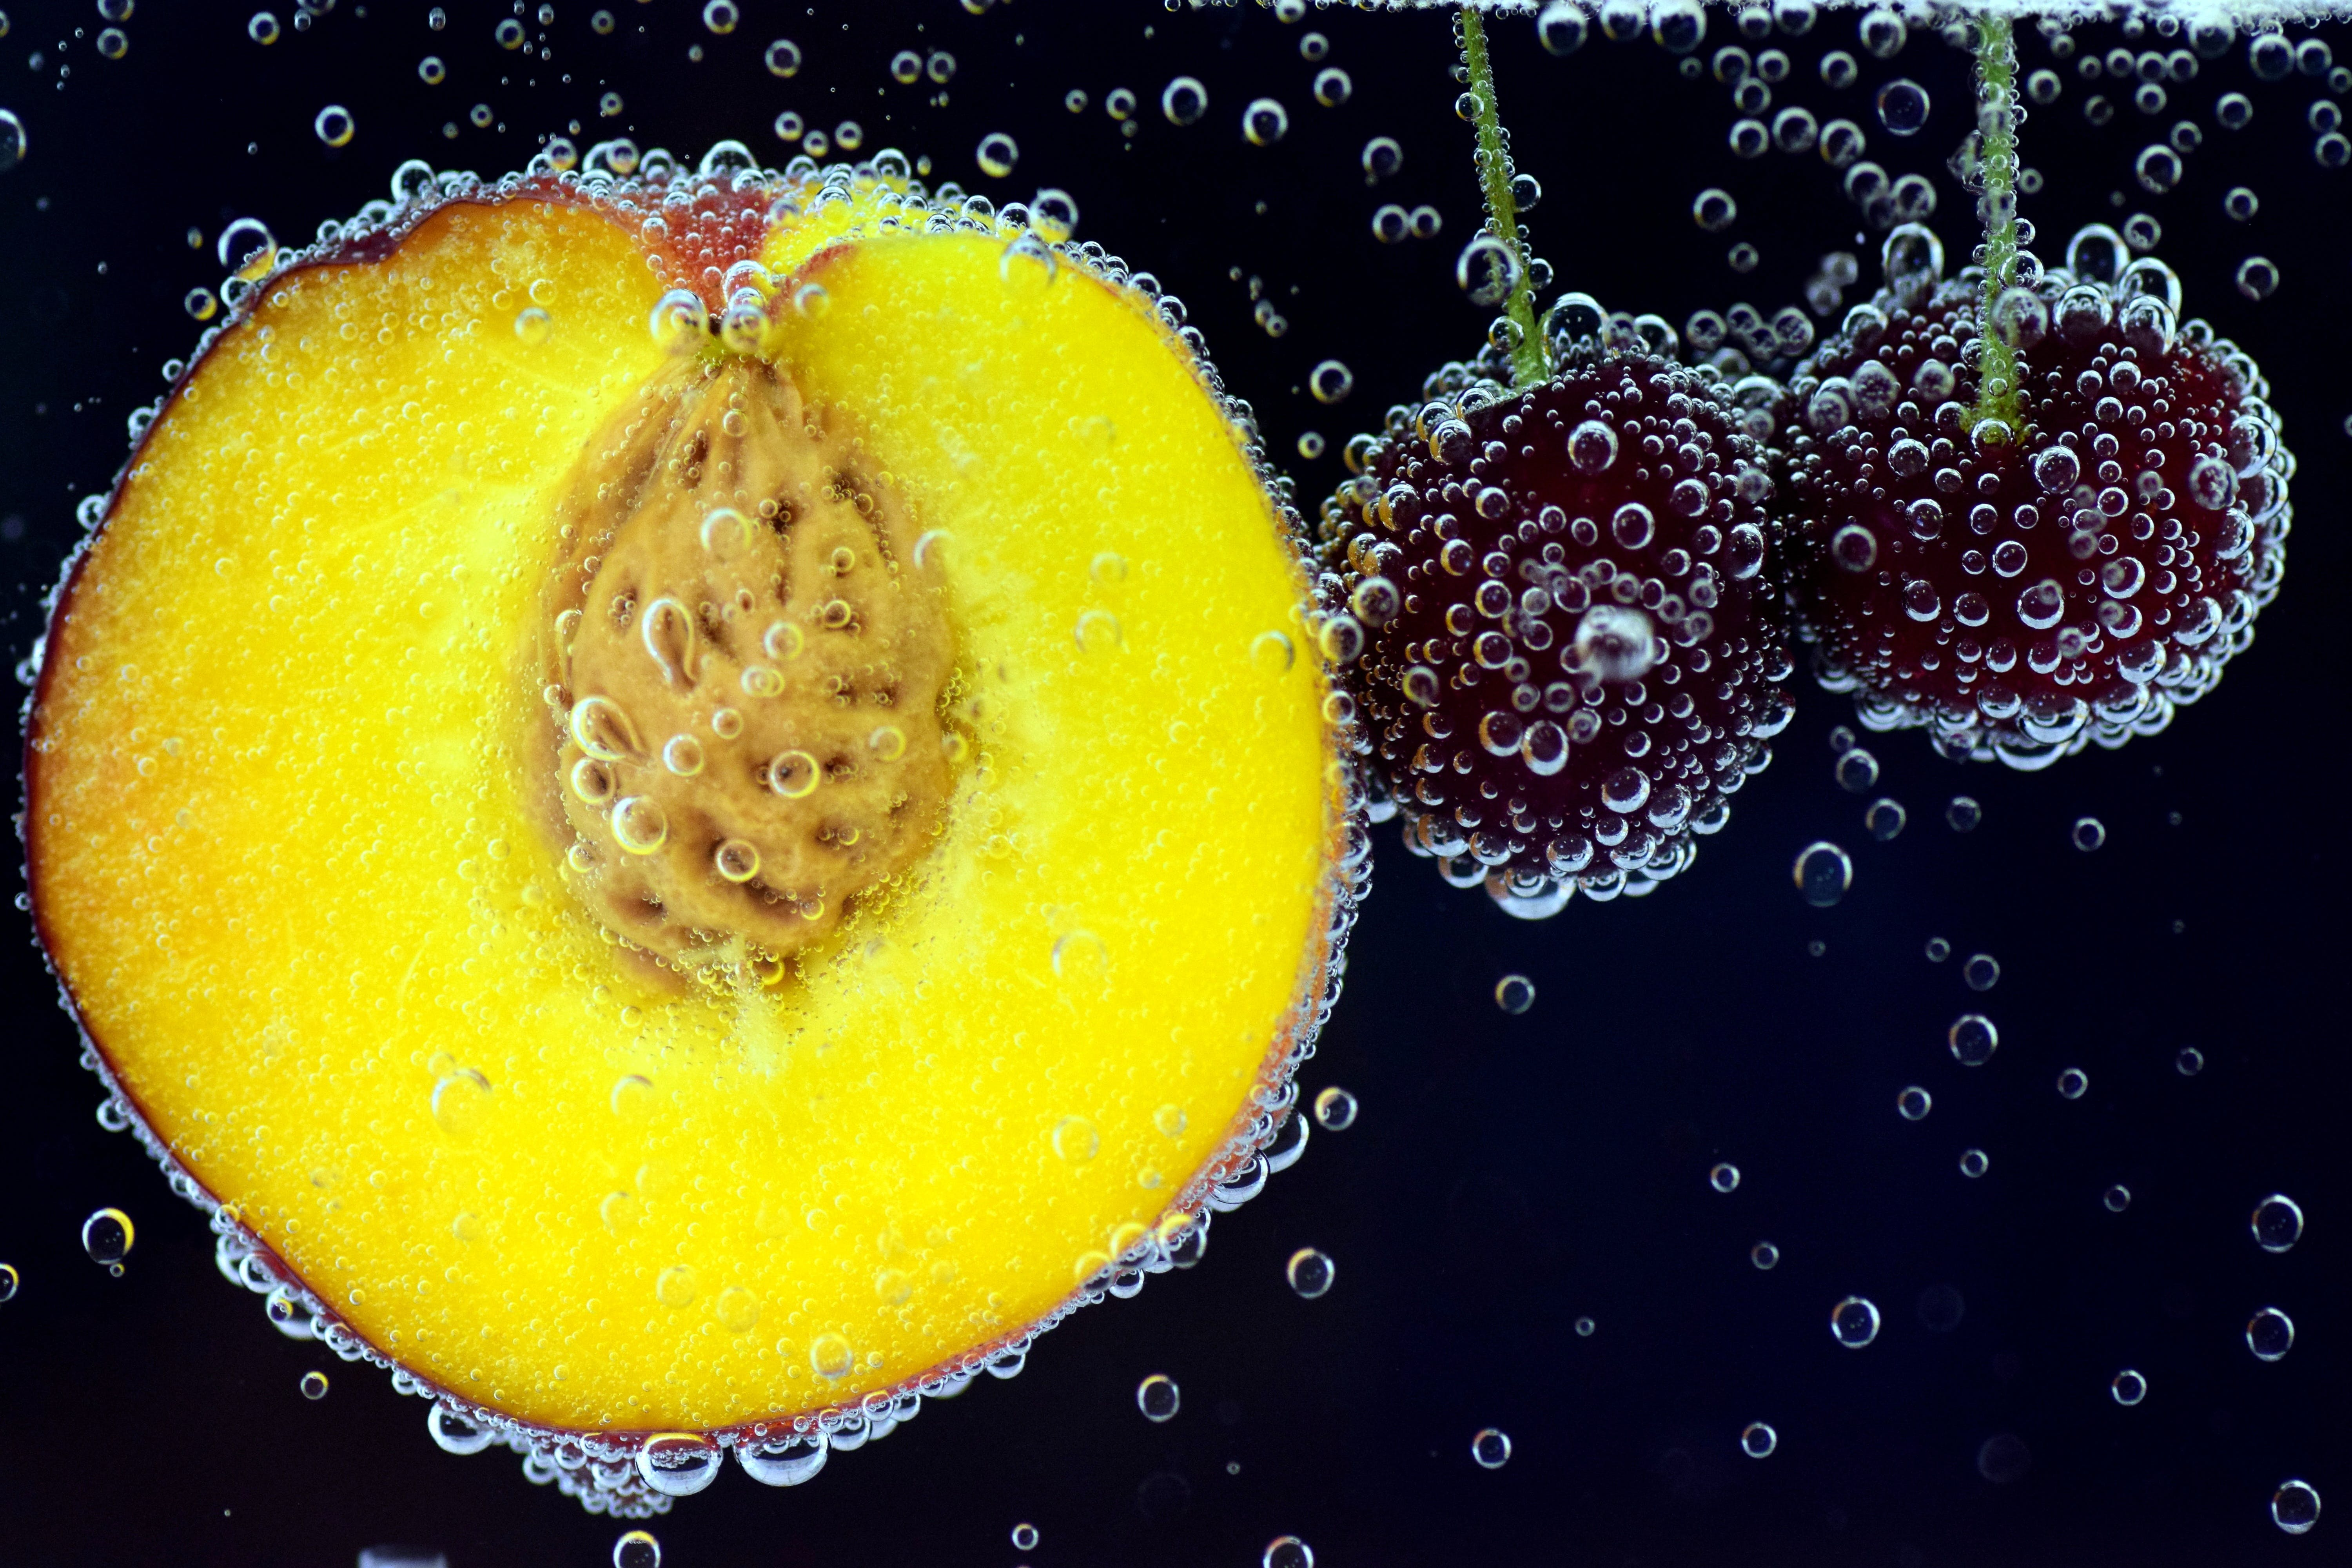 Sliced Fruit and Two Red Fruits in Water